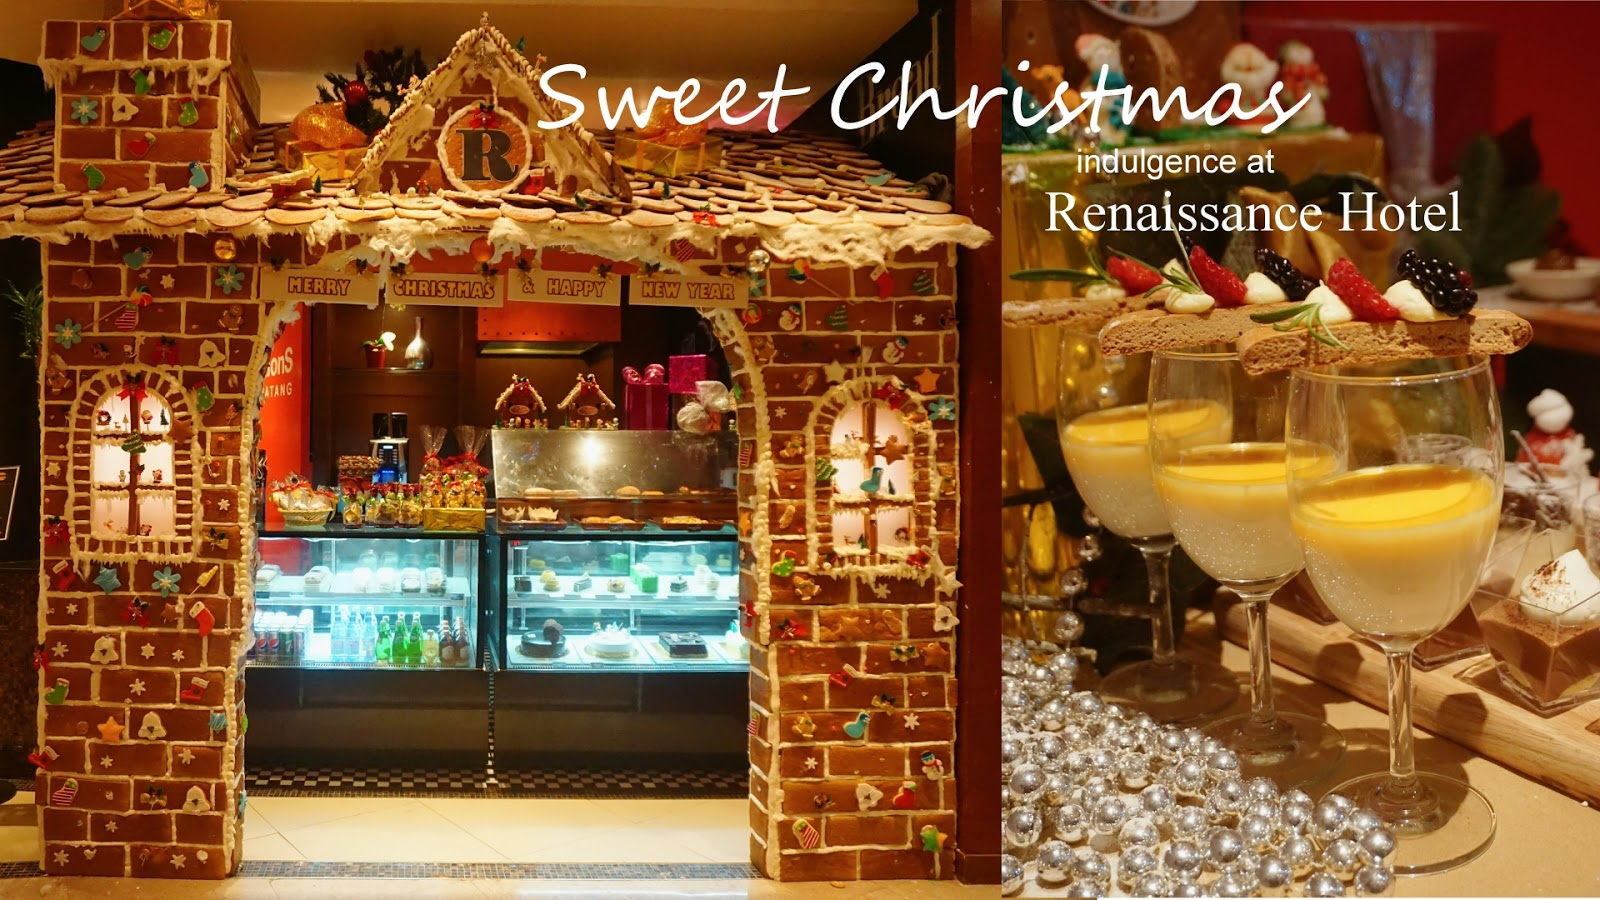 Temptations Christmas.Sweet Christmas At Temptations Renaissance Kl Hotel